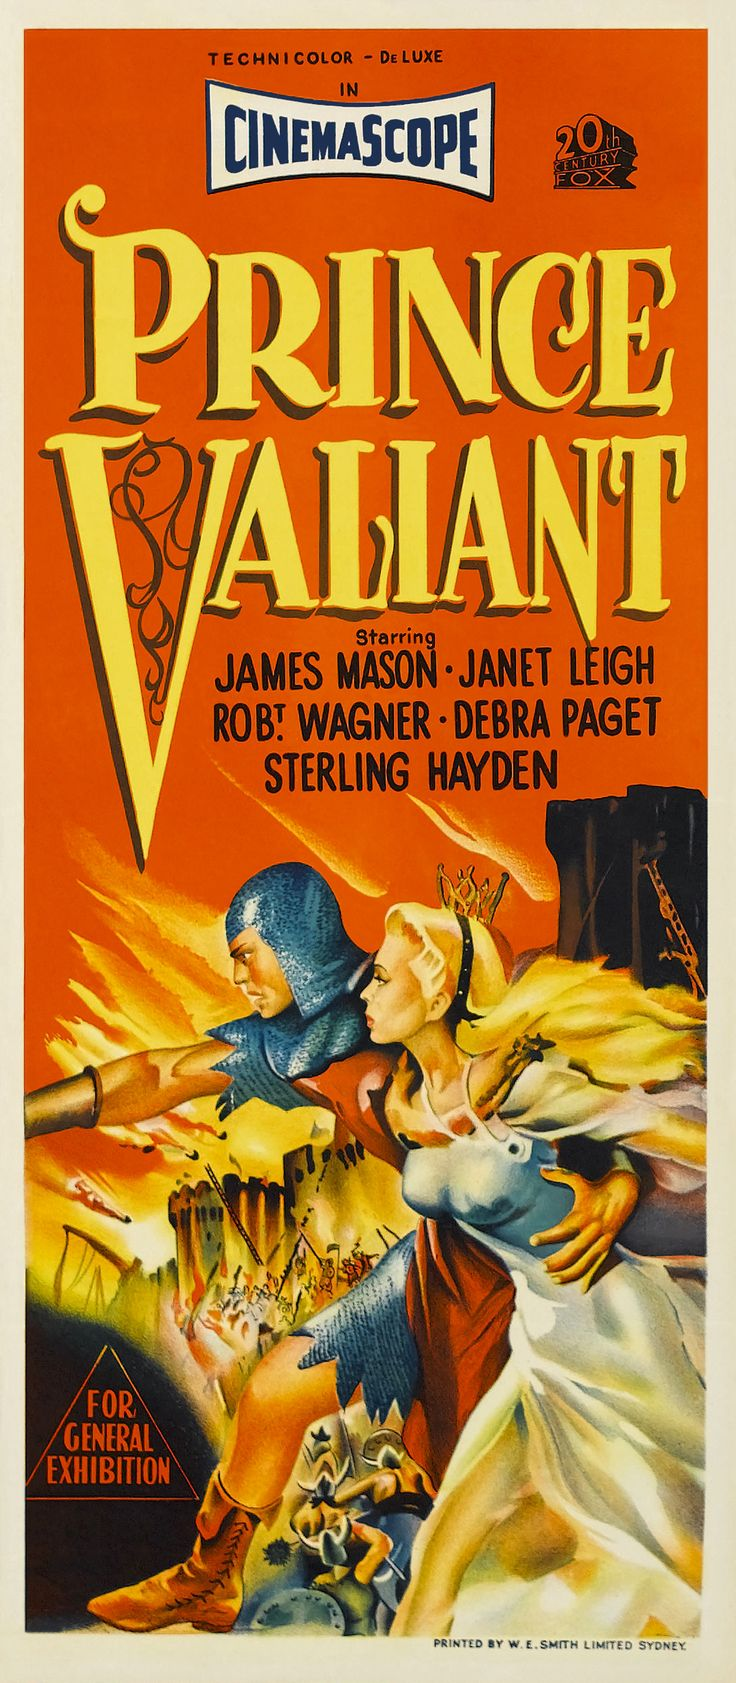 After the evil King Sligon exiles his family from Scandia, Prince Valiant (Robert Wagner) vows to become a member of King Arthur's Knights of the Round Table in order to return his father to the throne. As he travels to Camelot, Valiant discovers the Black Knight, a villain conspiring with Sligon to destroy King Arthur. Under the eye of Sir Gawain (Sterling Hayden), Valiant trains to become a knight, falls for a princess (Janet Leigh) and unmasks the Black Knight.